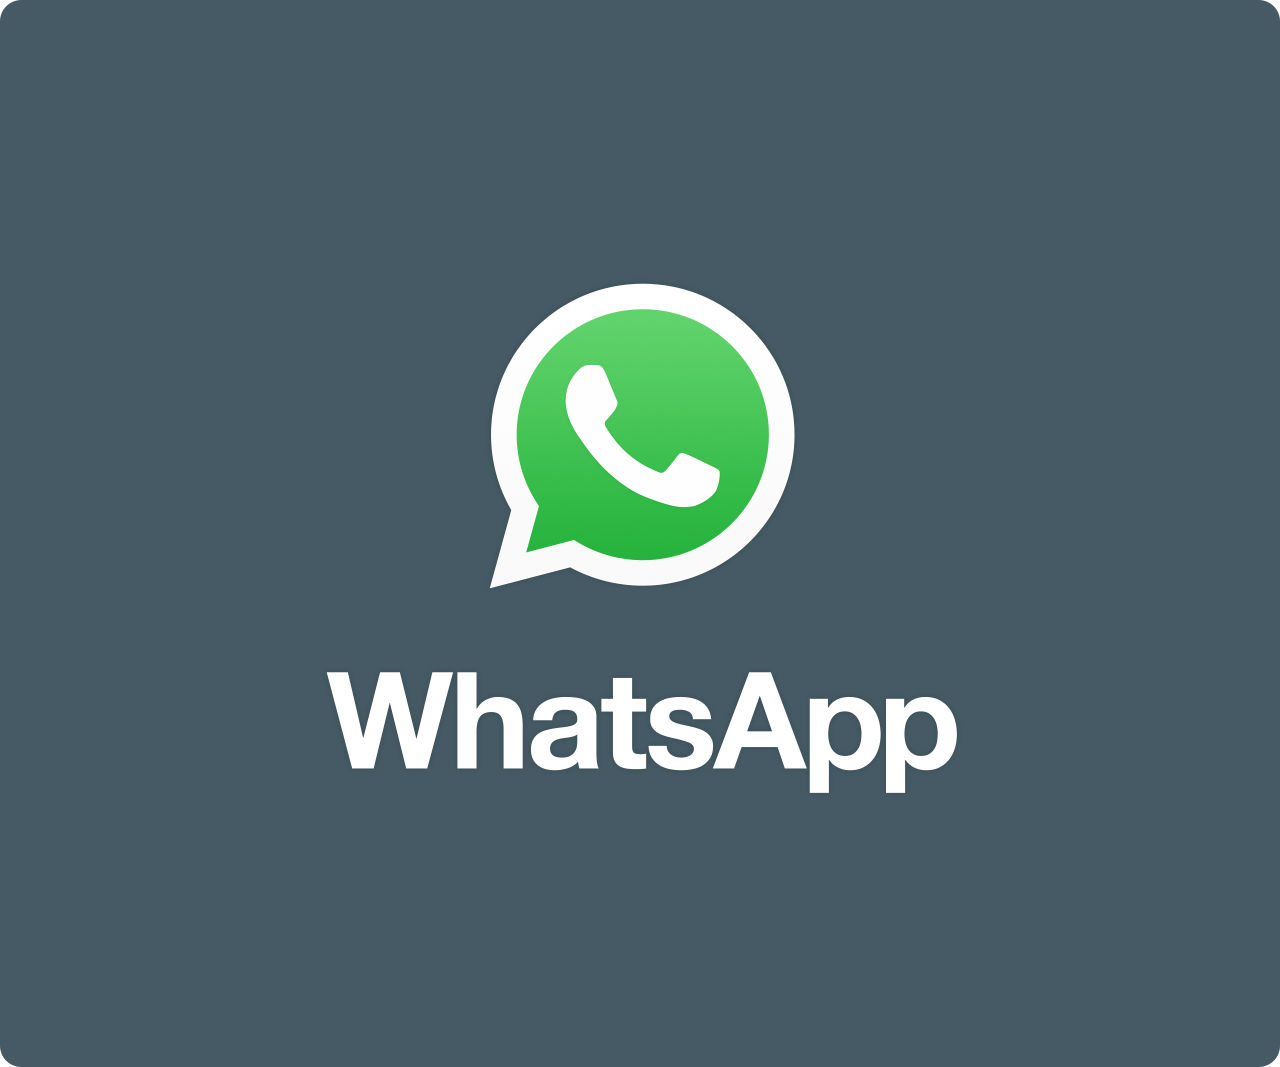 WhatsApp Introduces 'Disappearing Messages' Option